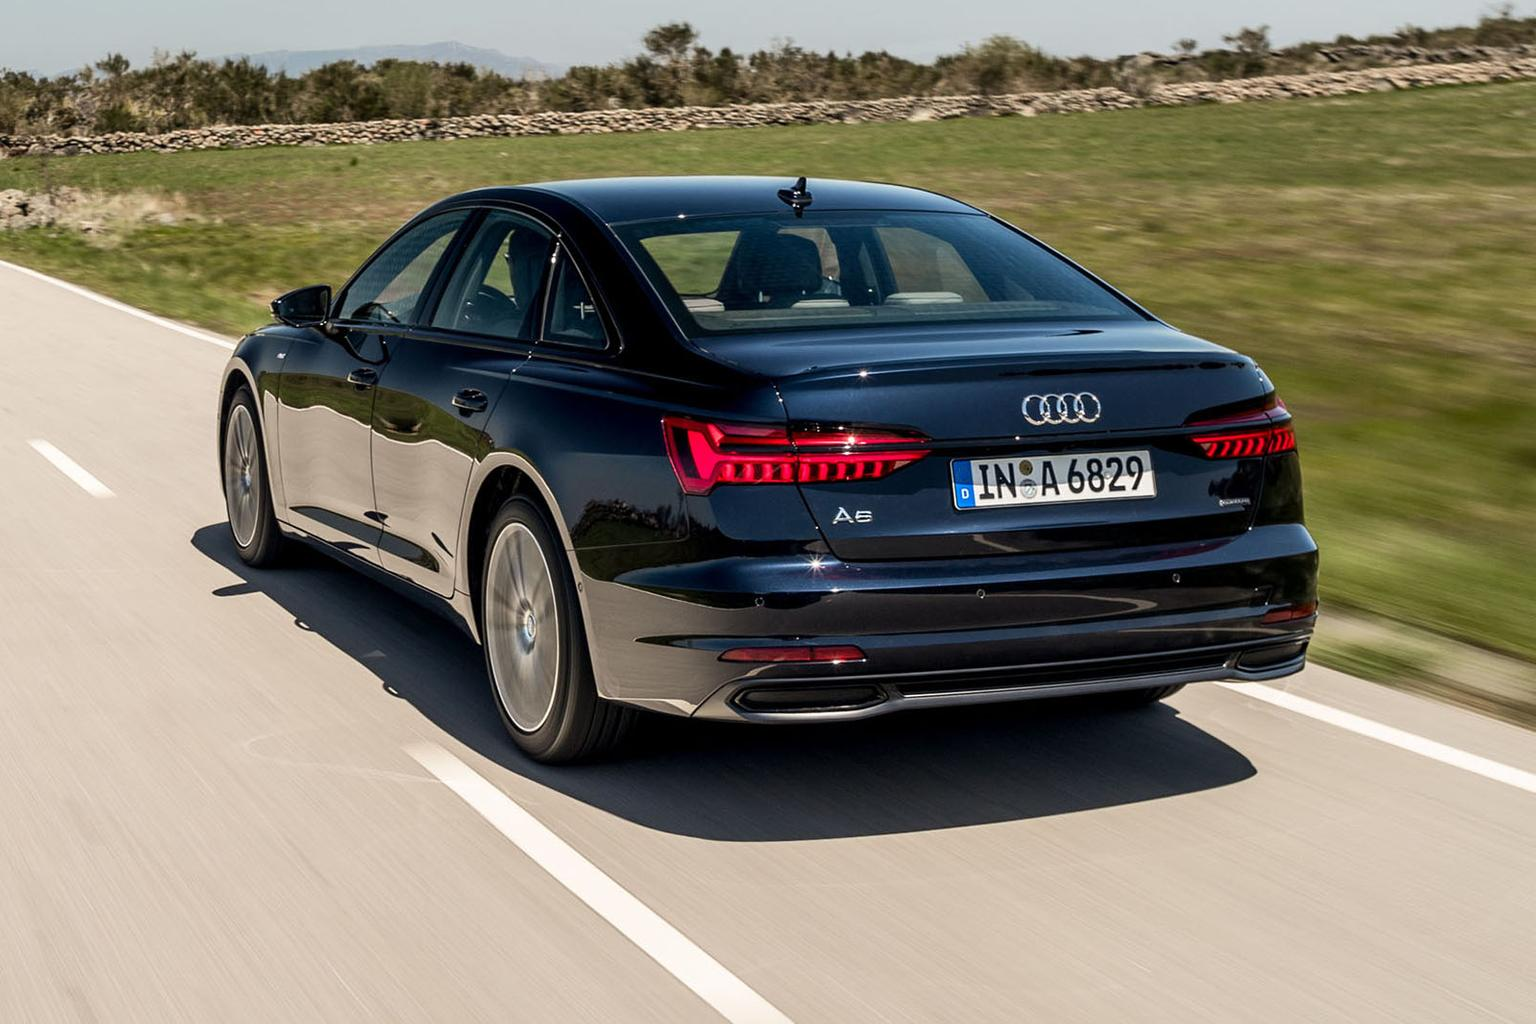 2018 Audi A6 review – price, specs and release date